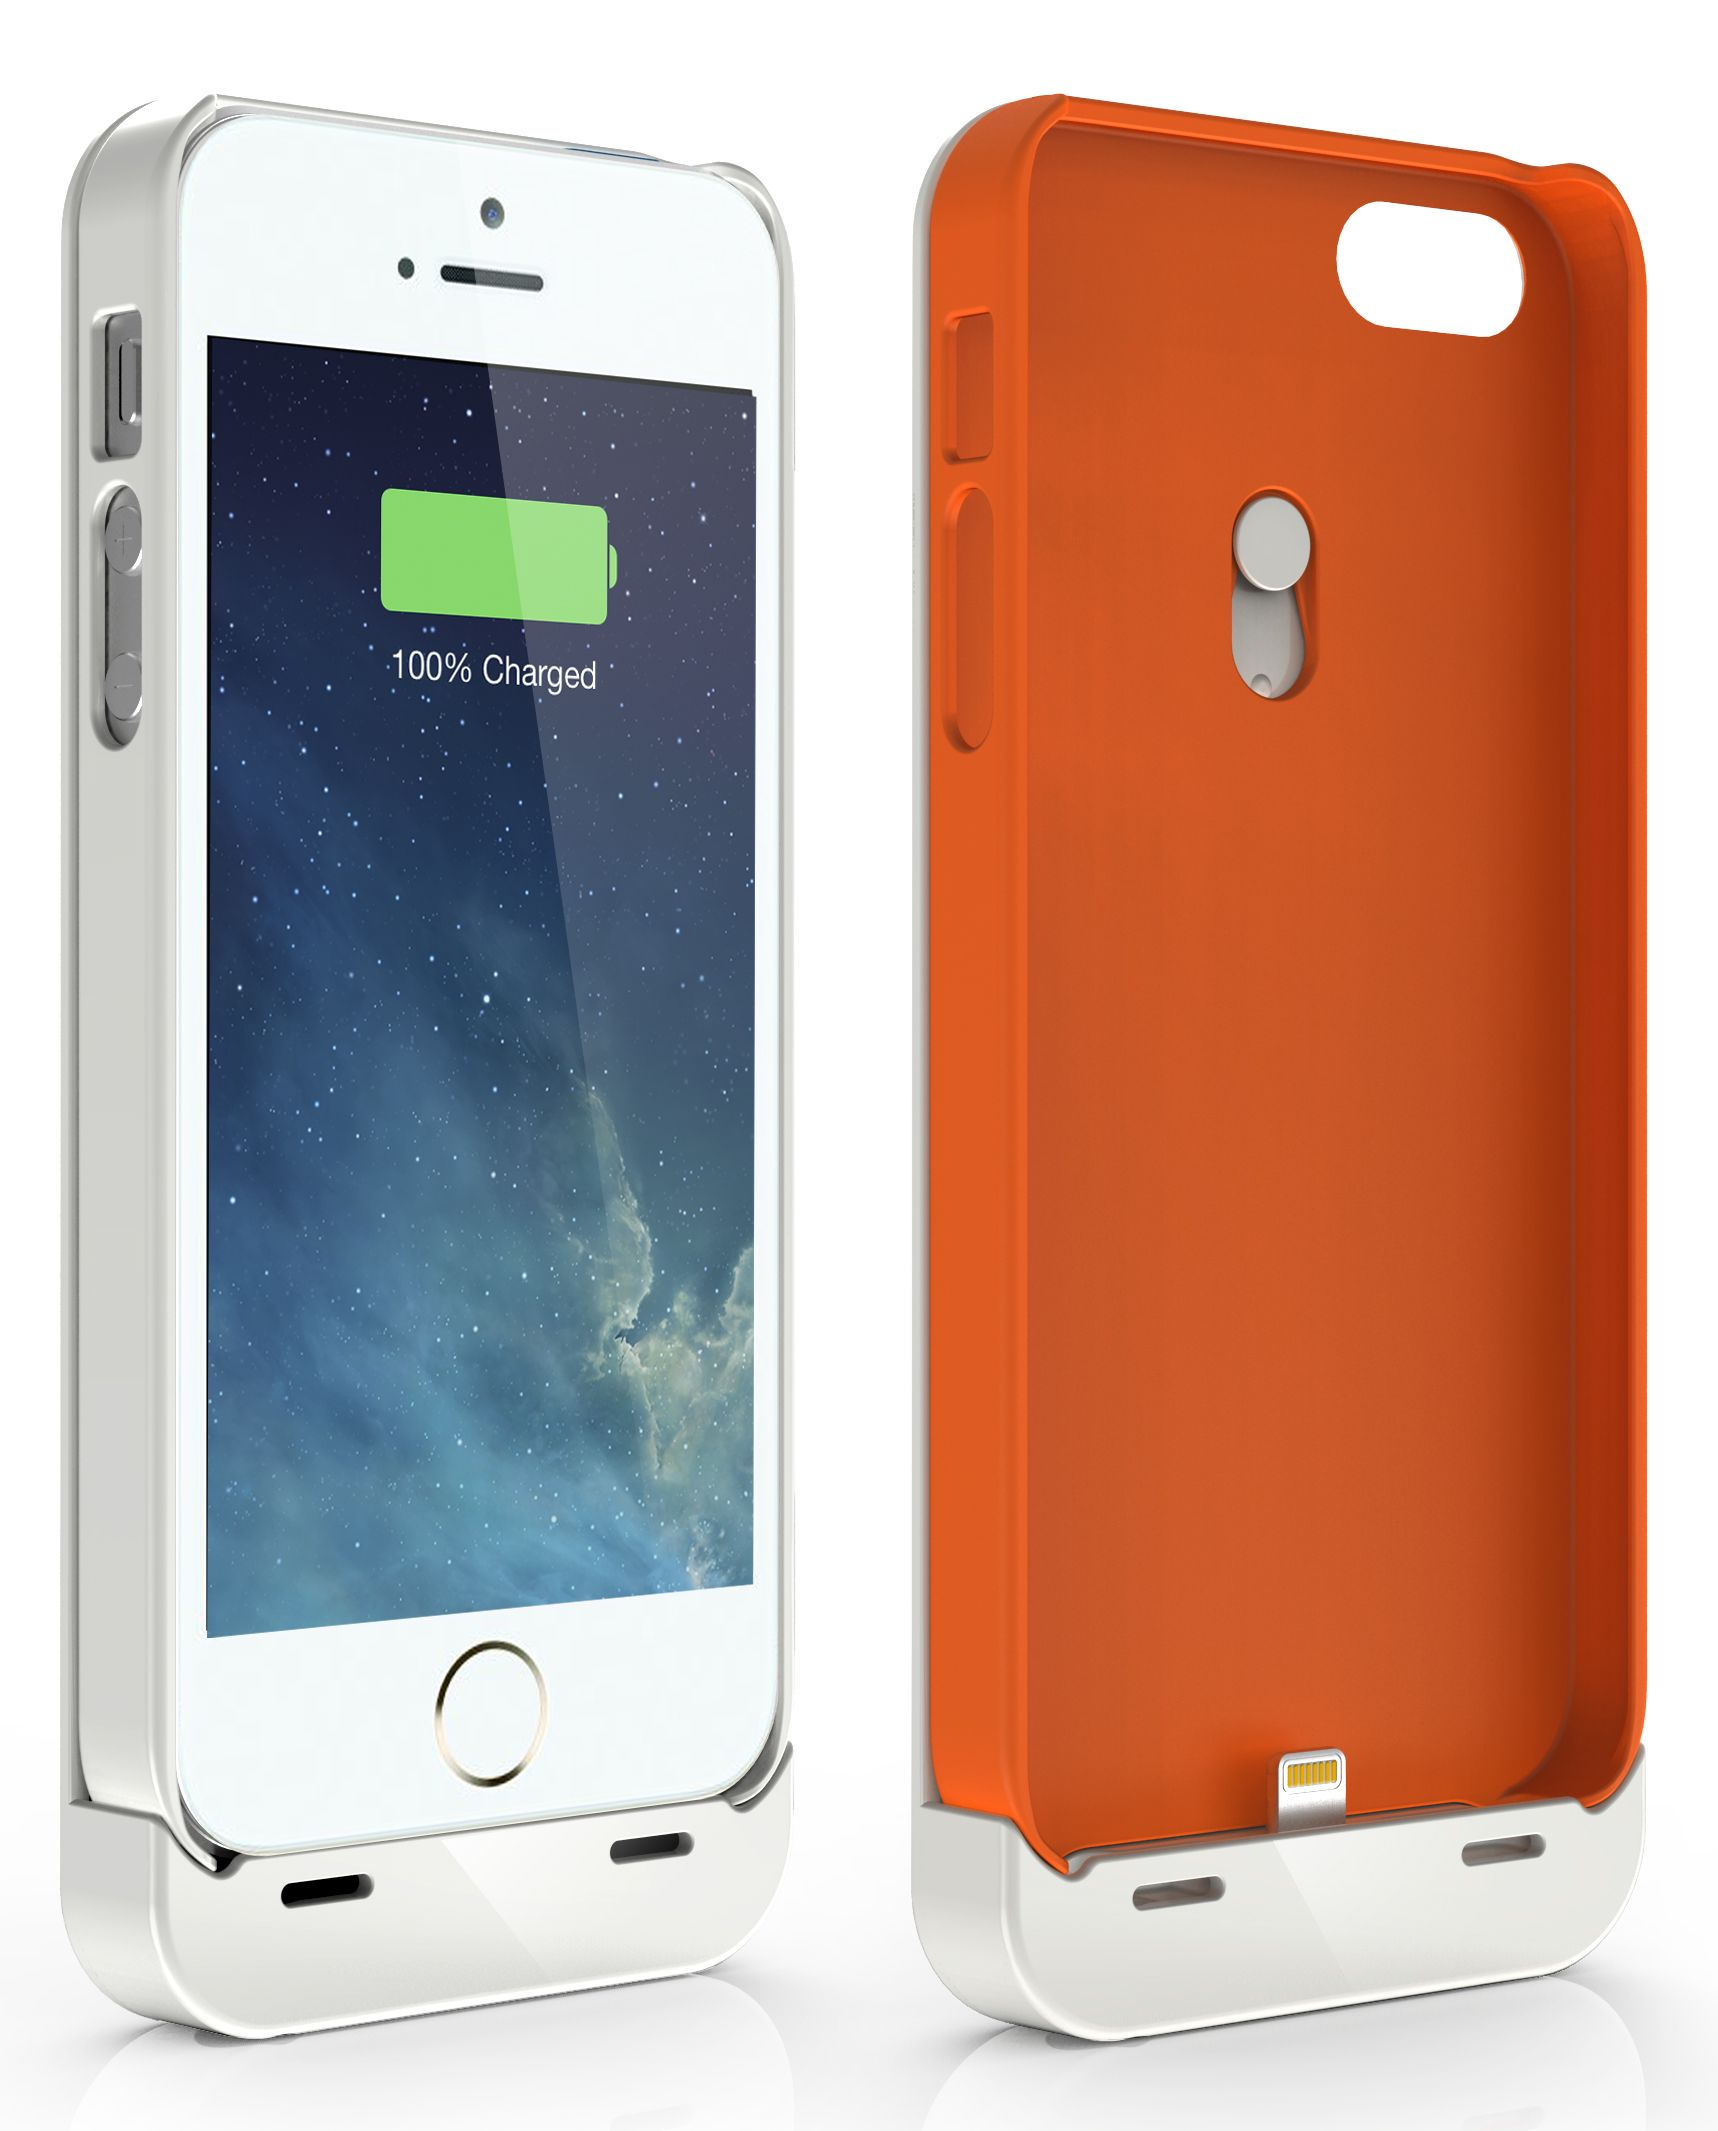 Jackery leaf premium external battery case charger for